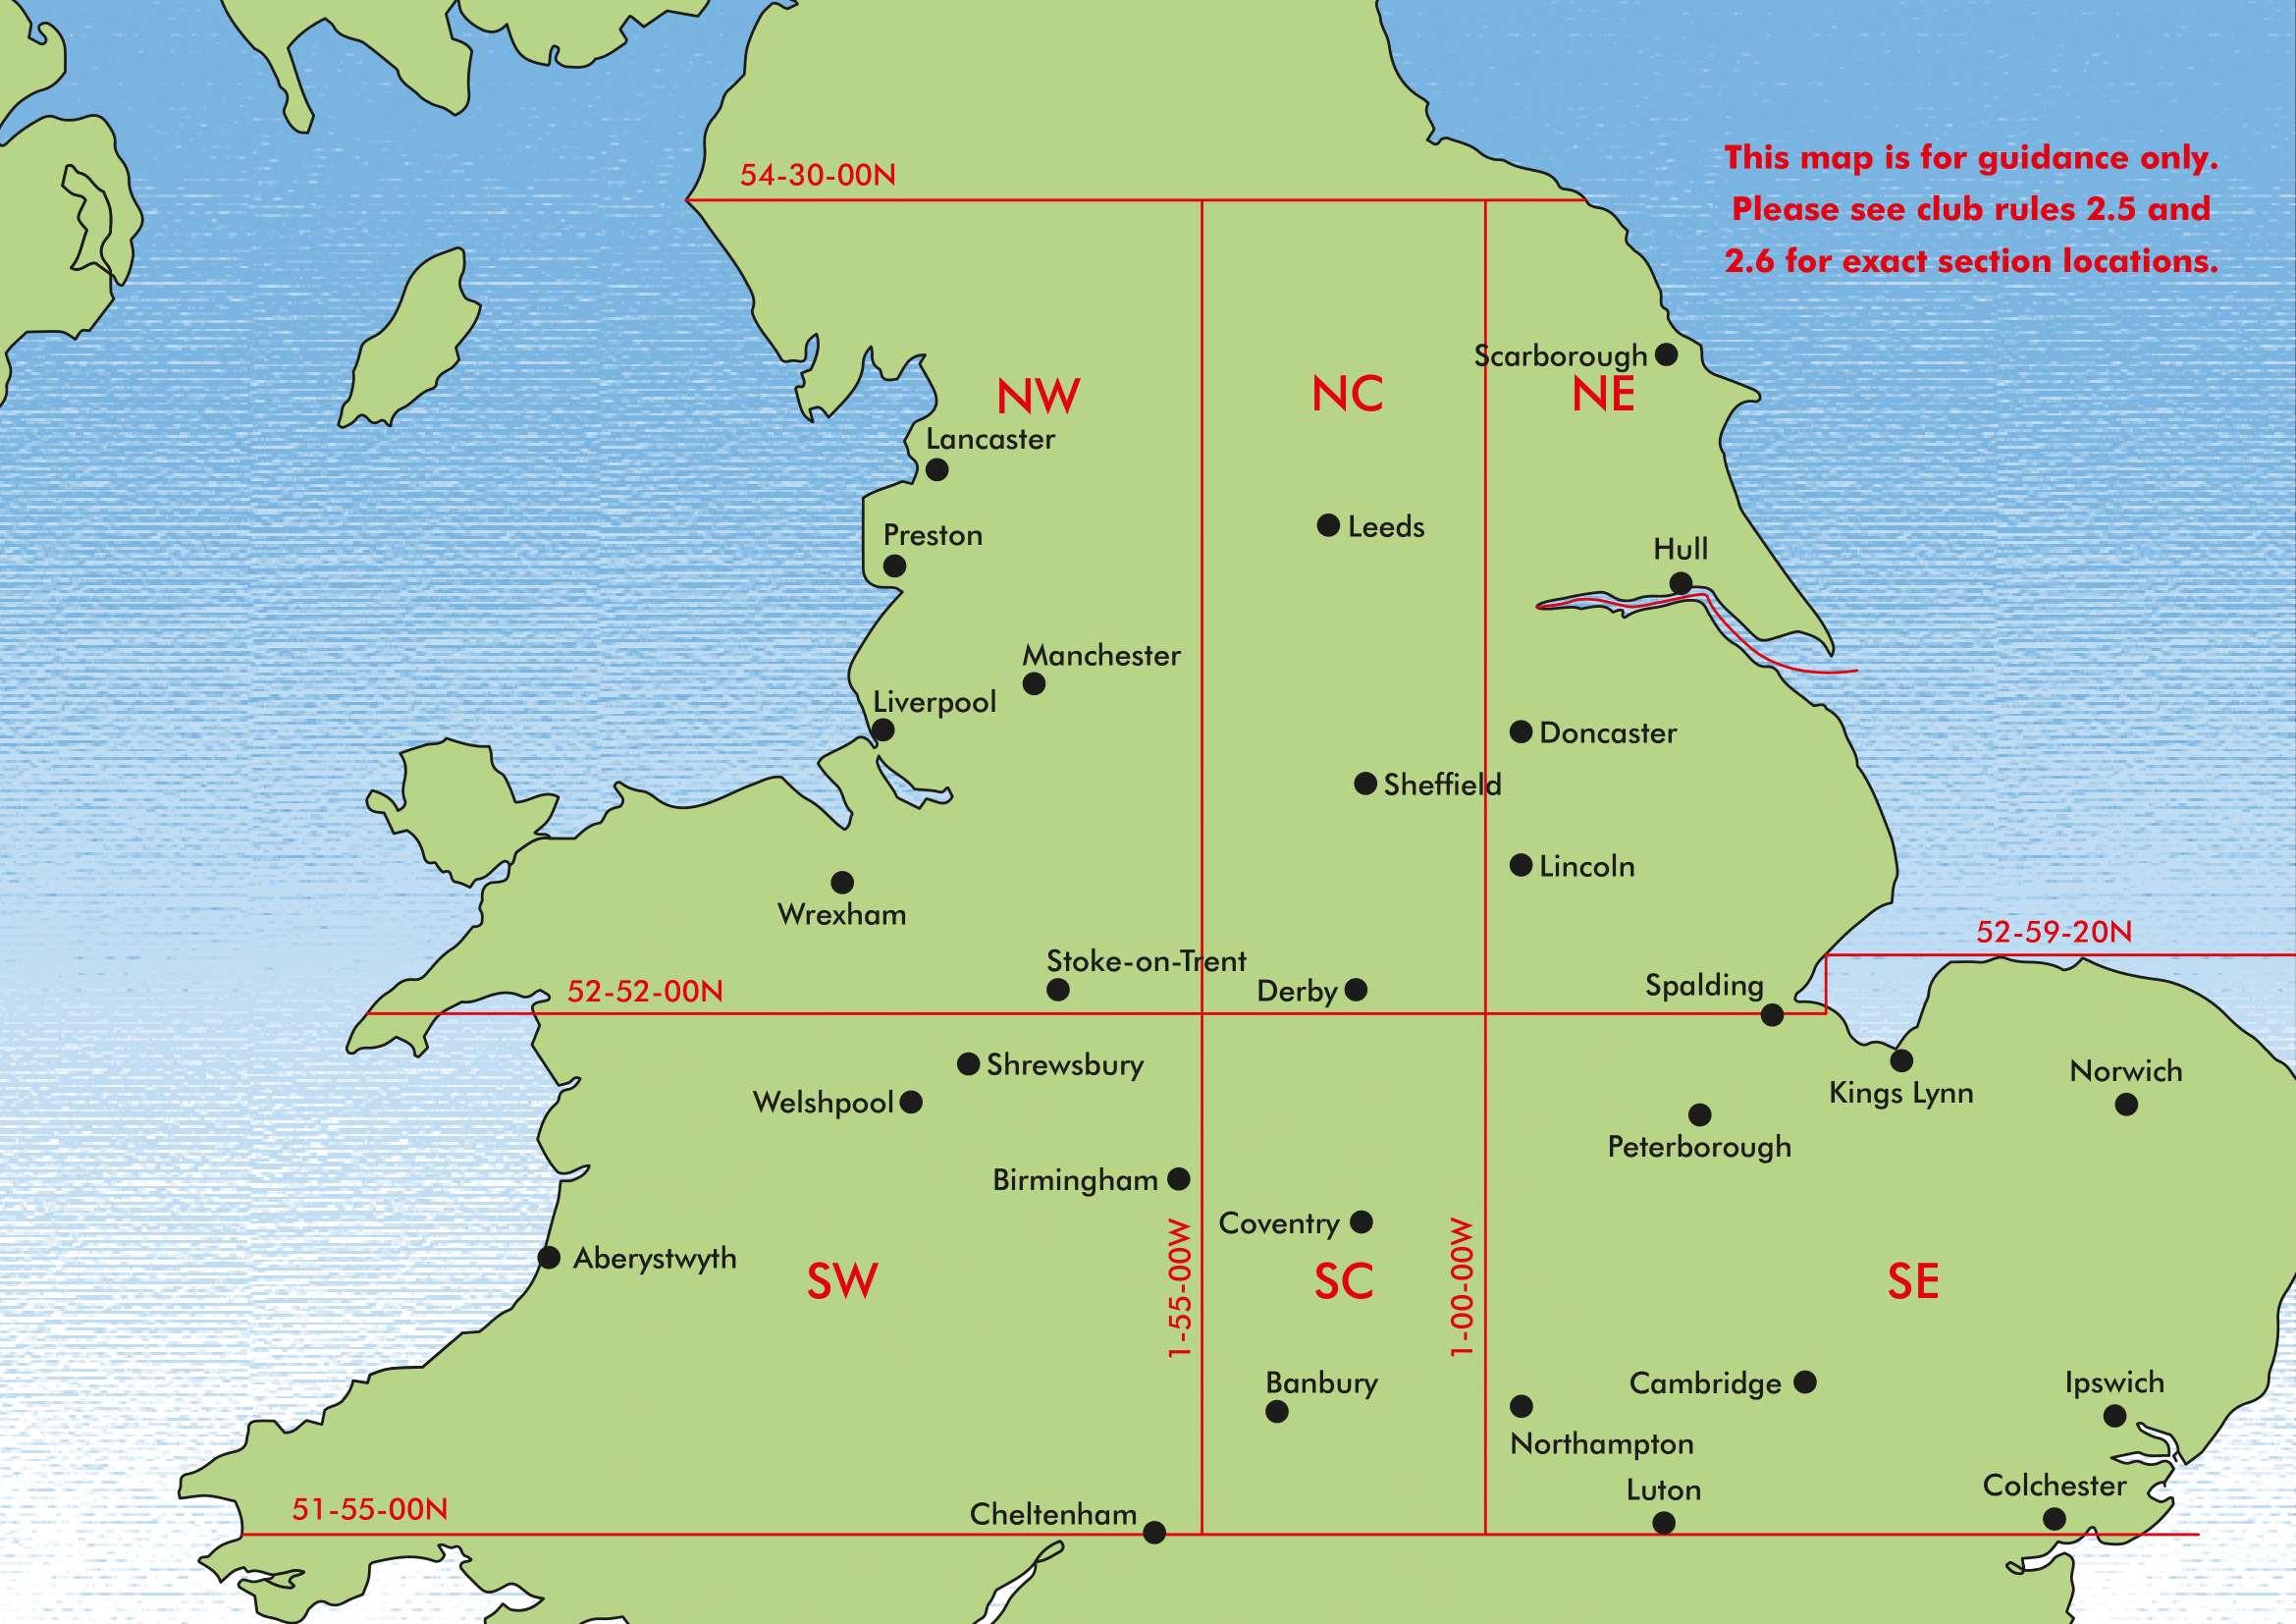 MNFC Boundary Map 2020 v1.2.png 1